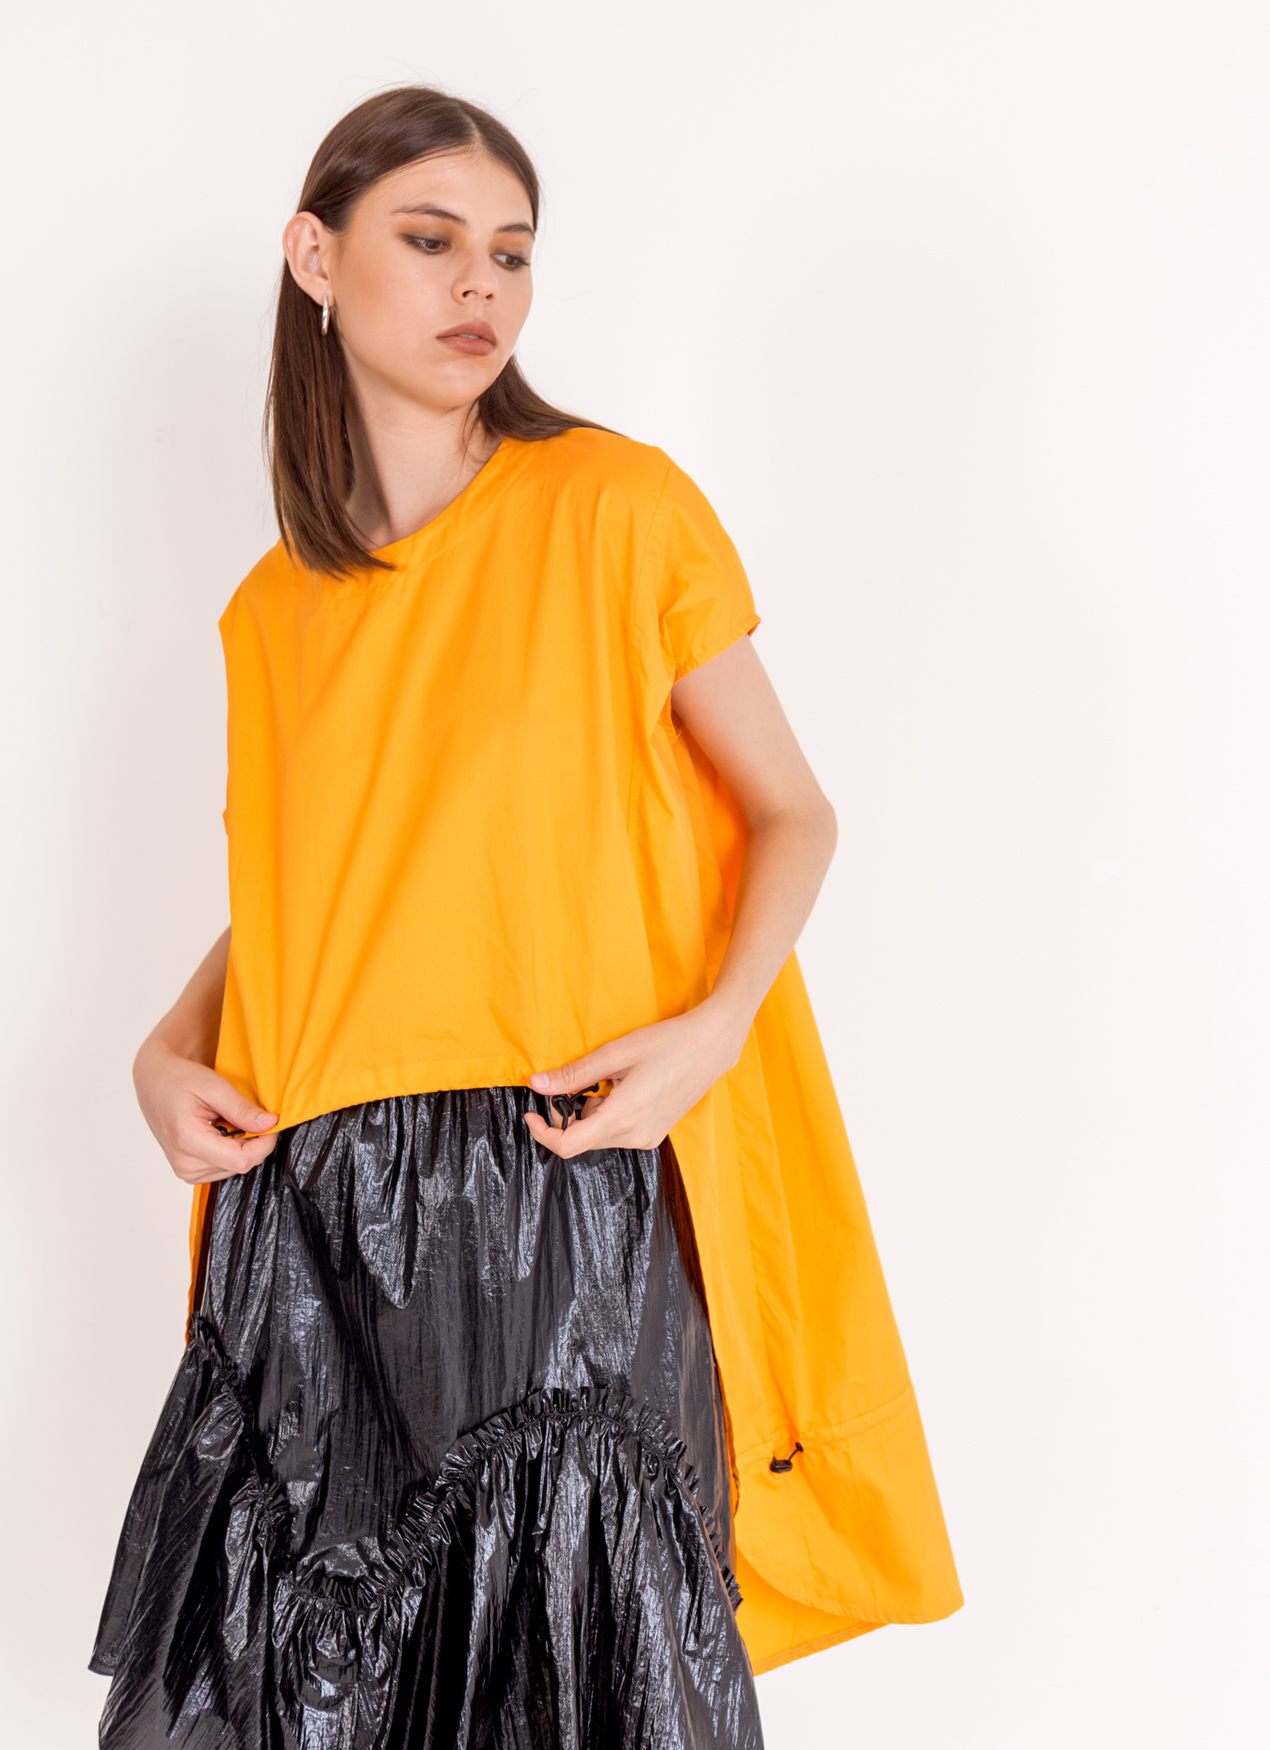 BOWN Nanette Top - Yellow